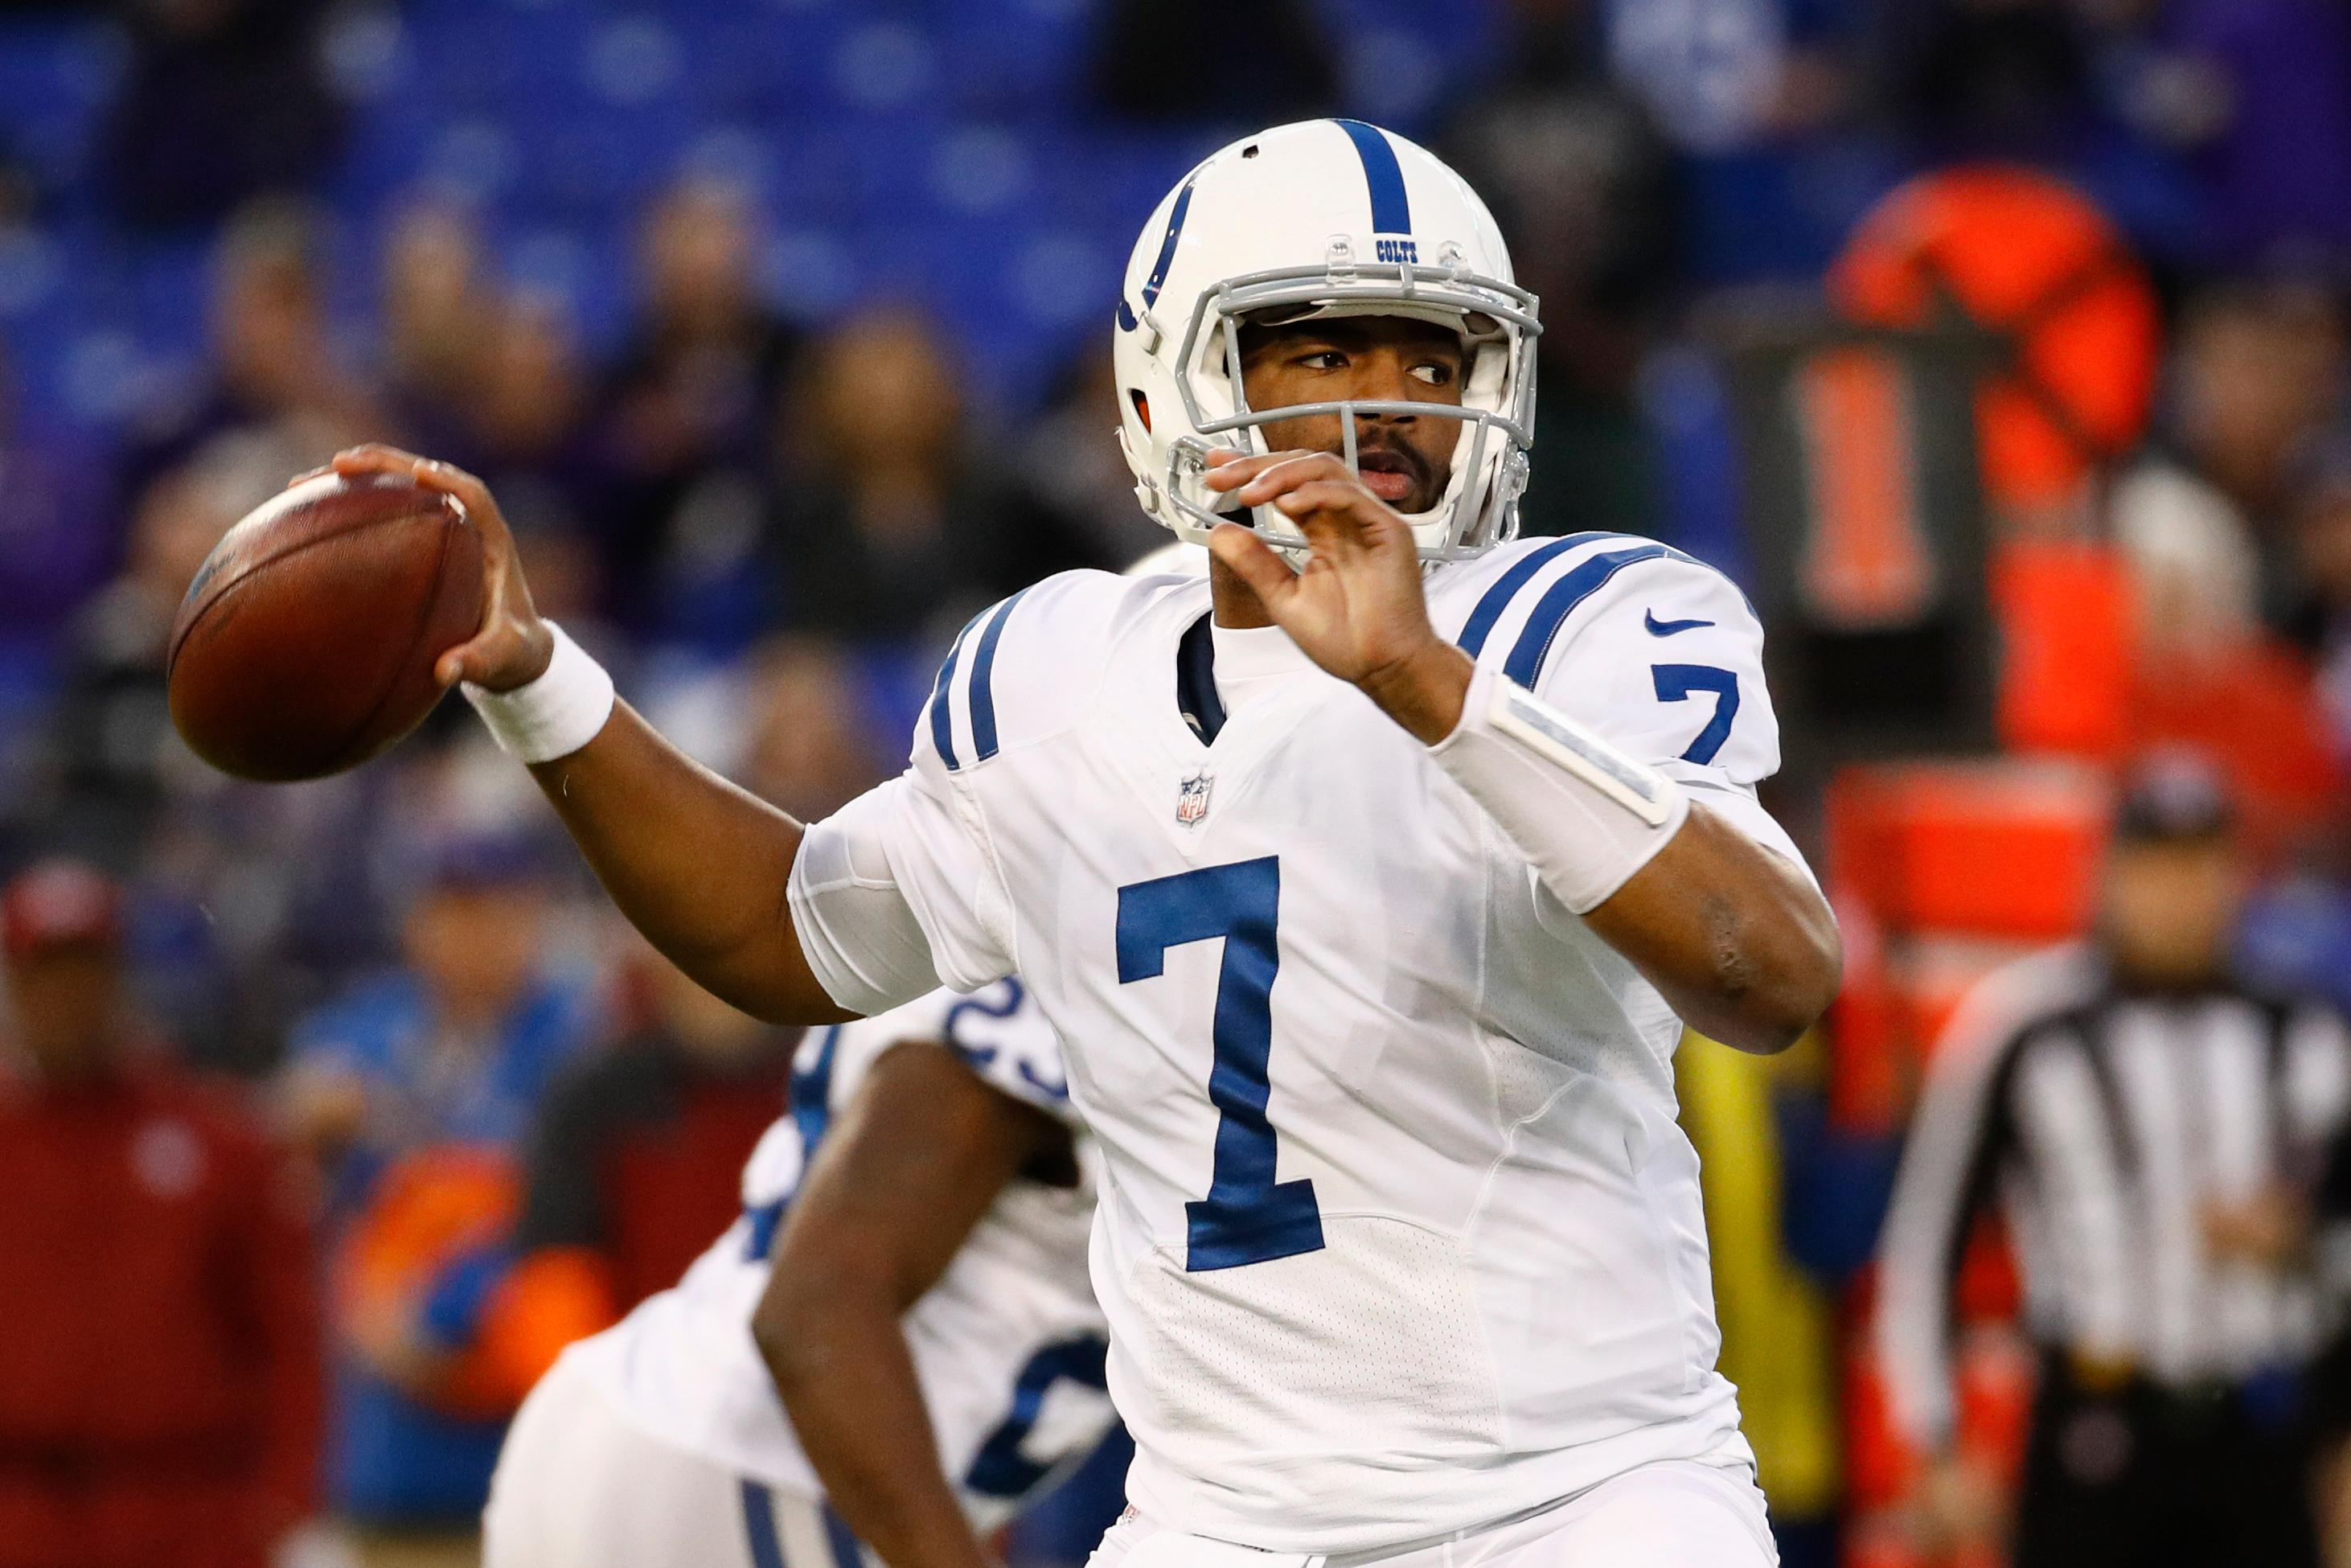 Indianapolis Colts quarterback Jacoby Brissett (7) passes the ball during the first half of an NFL football game against Baltimore Ravens in Baltimore, Saturday, Dec 23, 2017. (AP Photo/Patrick Semansky)